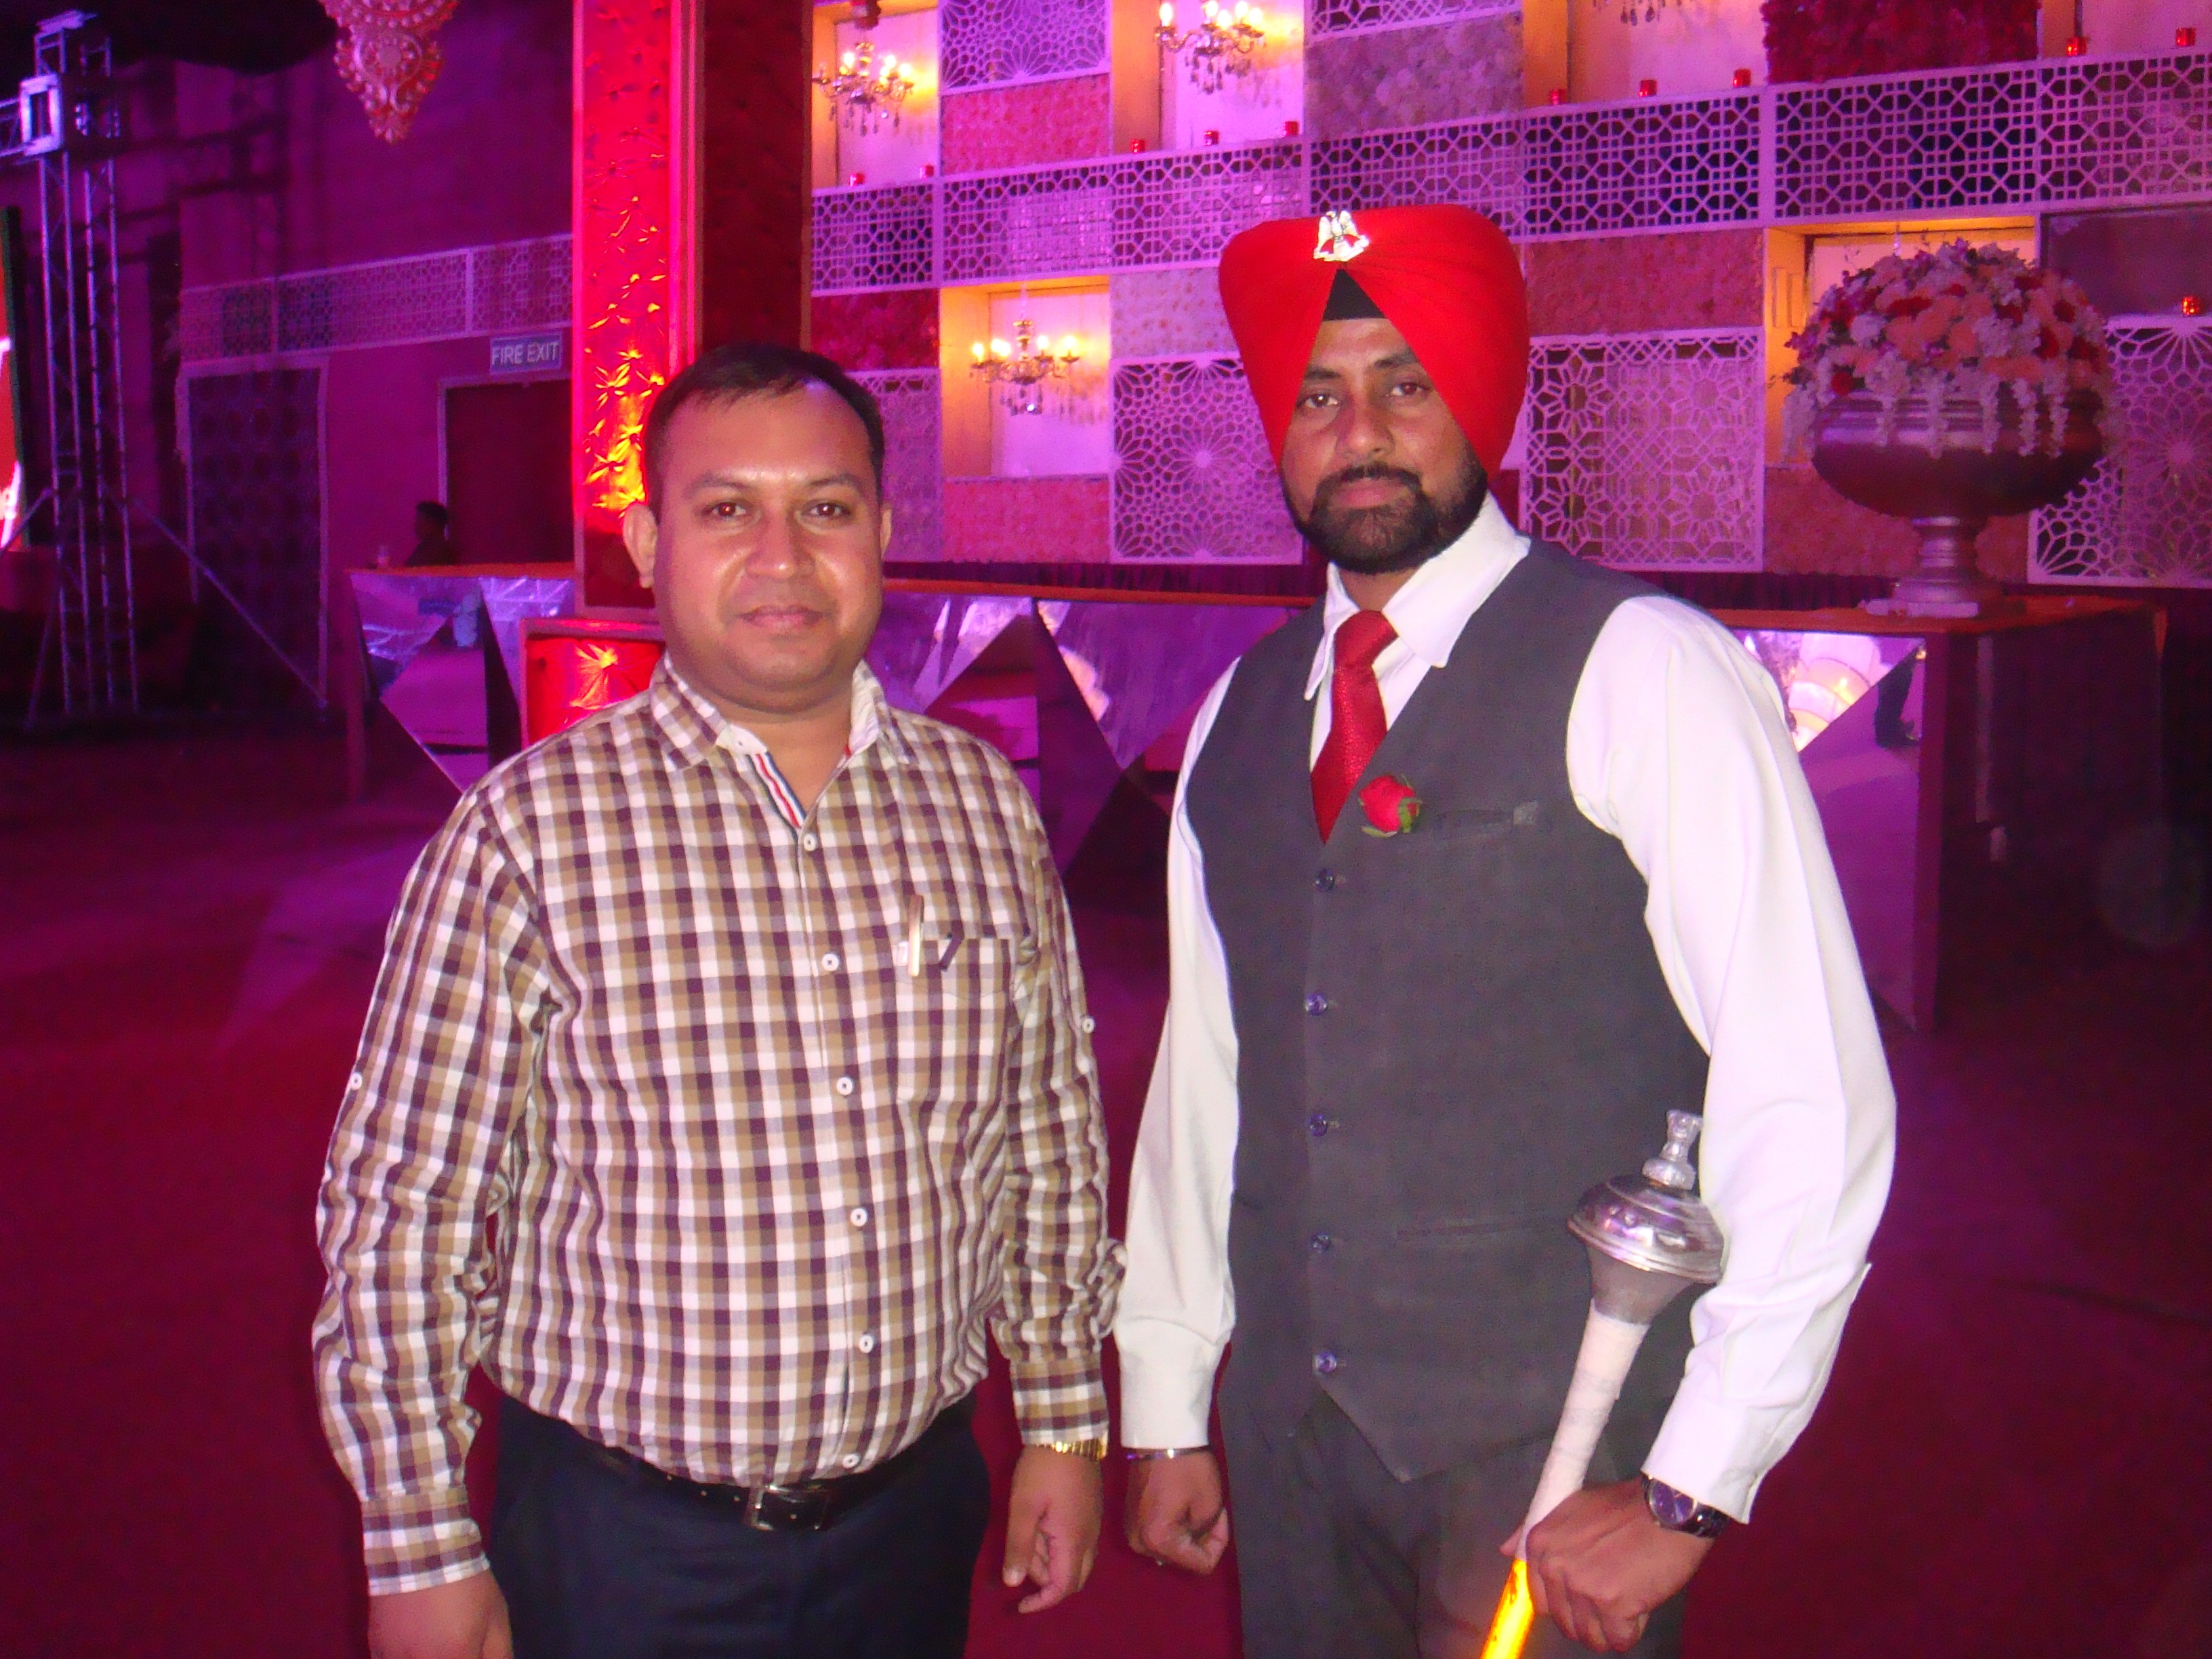 Official Website http://www.activemusic.in/india-delhi-ncr-punjabi-orchestra-singing-show/   Active Musical Entertainer- +91-9711053553, 9313770610  Punjabi Singers, Punjabi Orchestra Group for Events and Shows